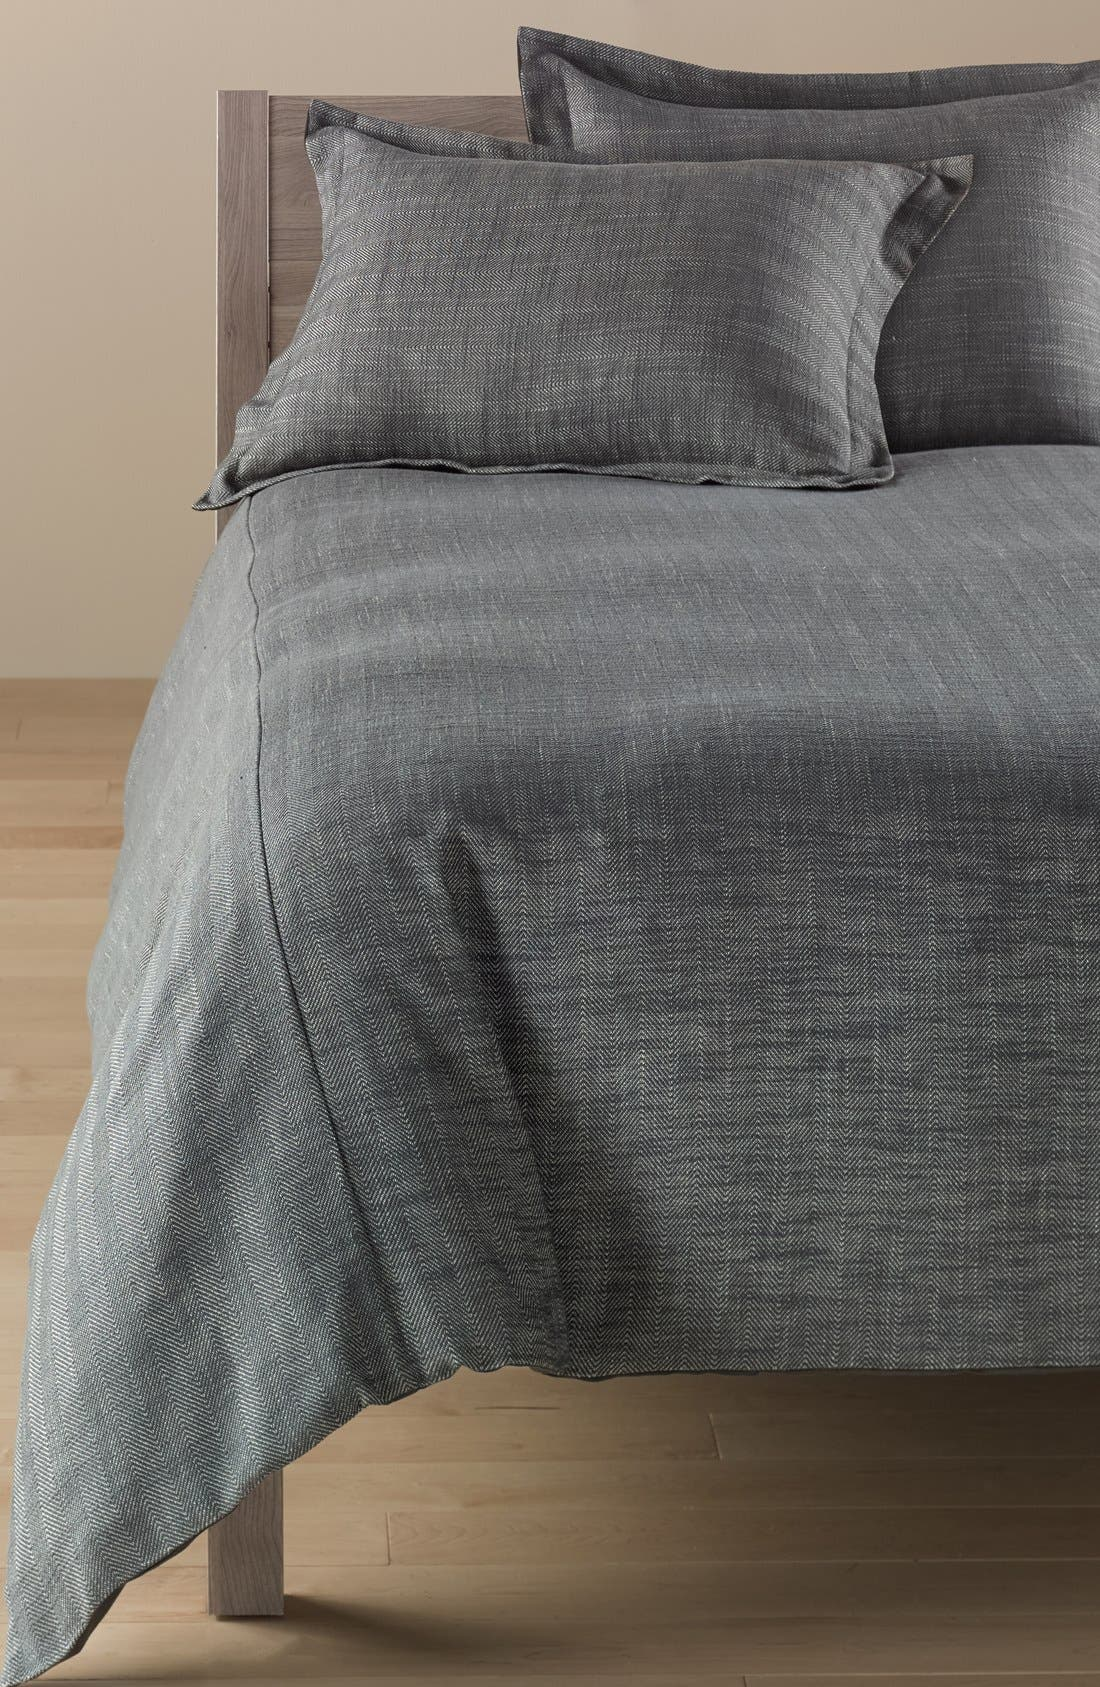 Alternate Image 1 Selected - Amity Home 'Logan' Duvet Cover